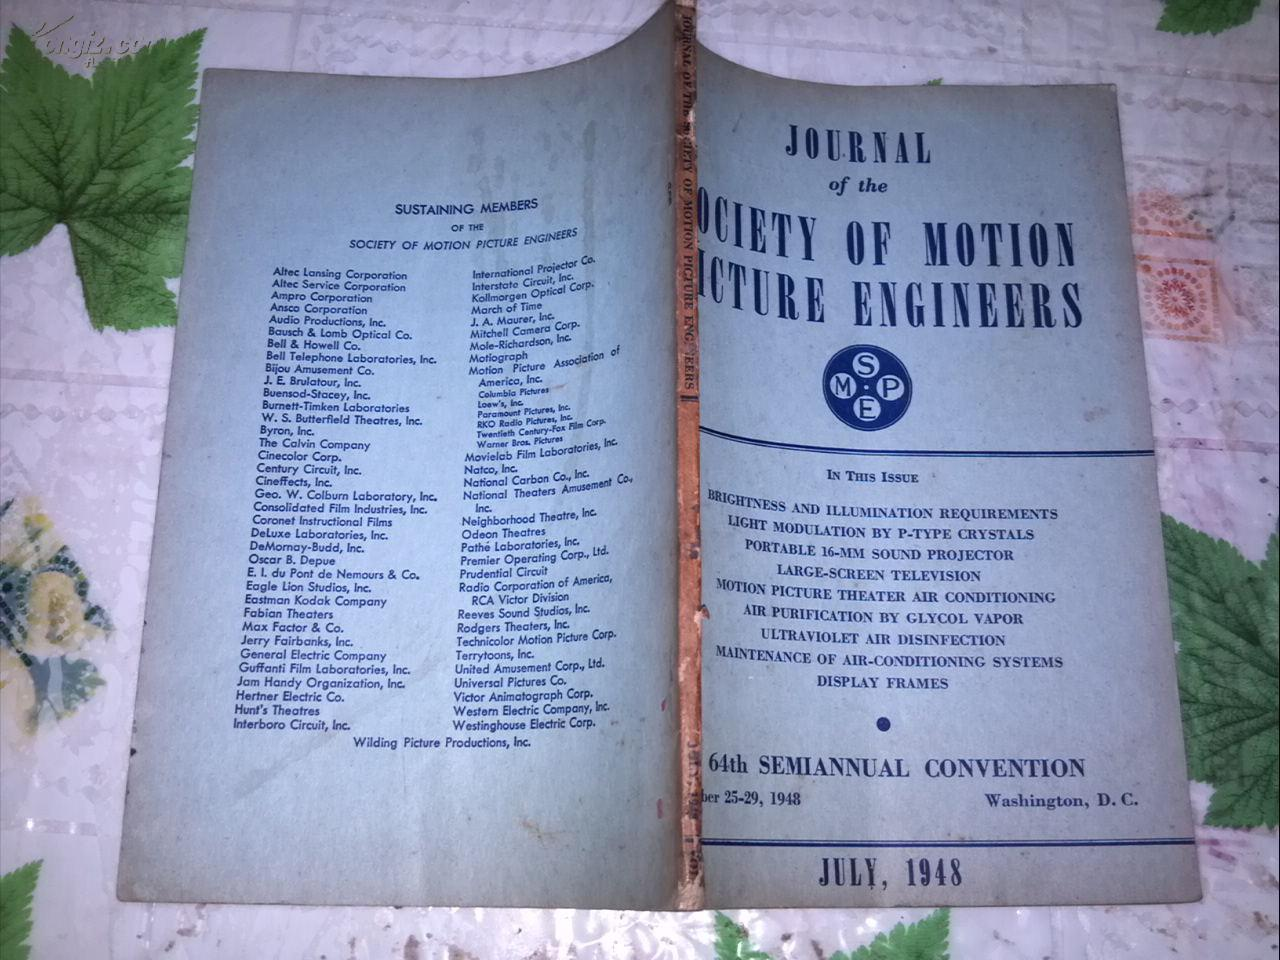 JOURNAL OF THE SOCIETY OF MOTION PICTURE ENGINEERS  JULY,  1948電影工程師協會雜志1948年7月號